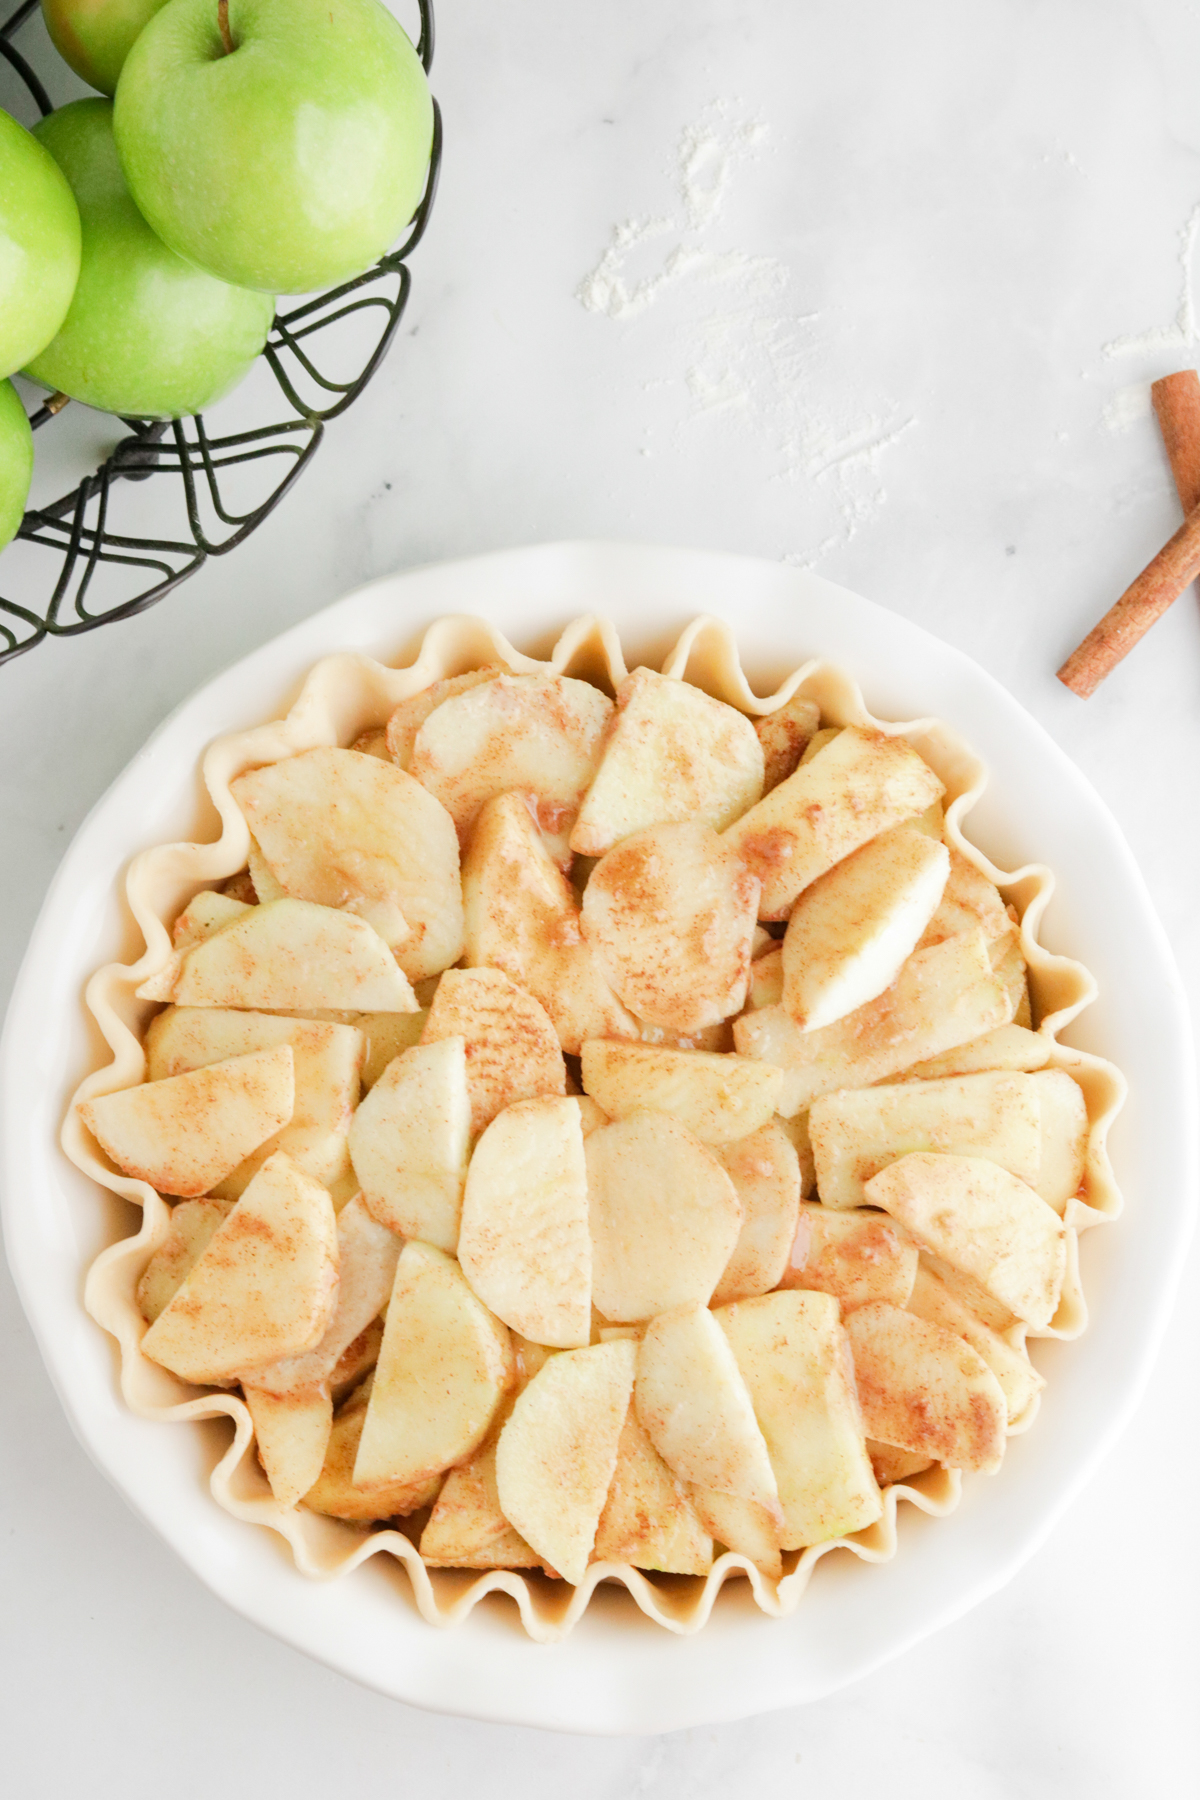 Sugared apples in pie crust to make apple pie with crumble topping